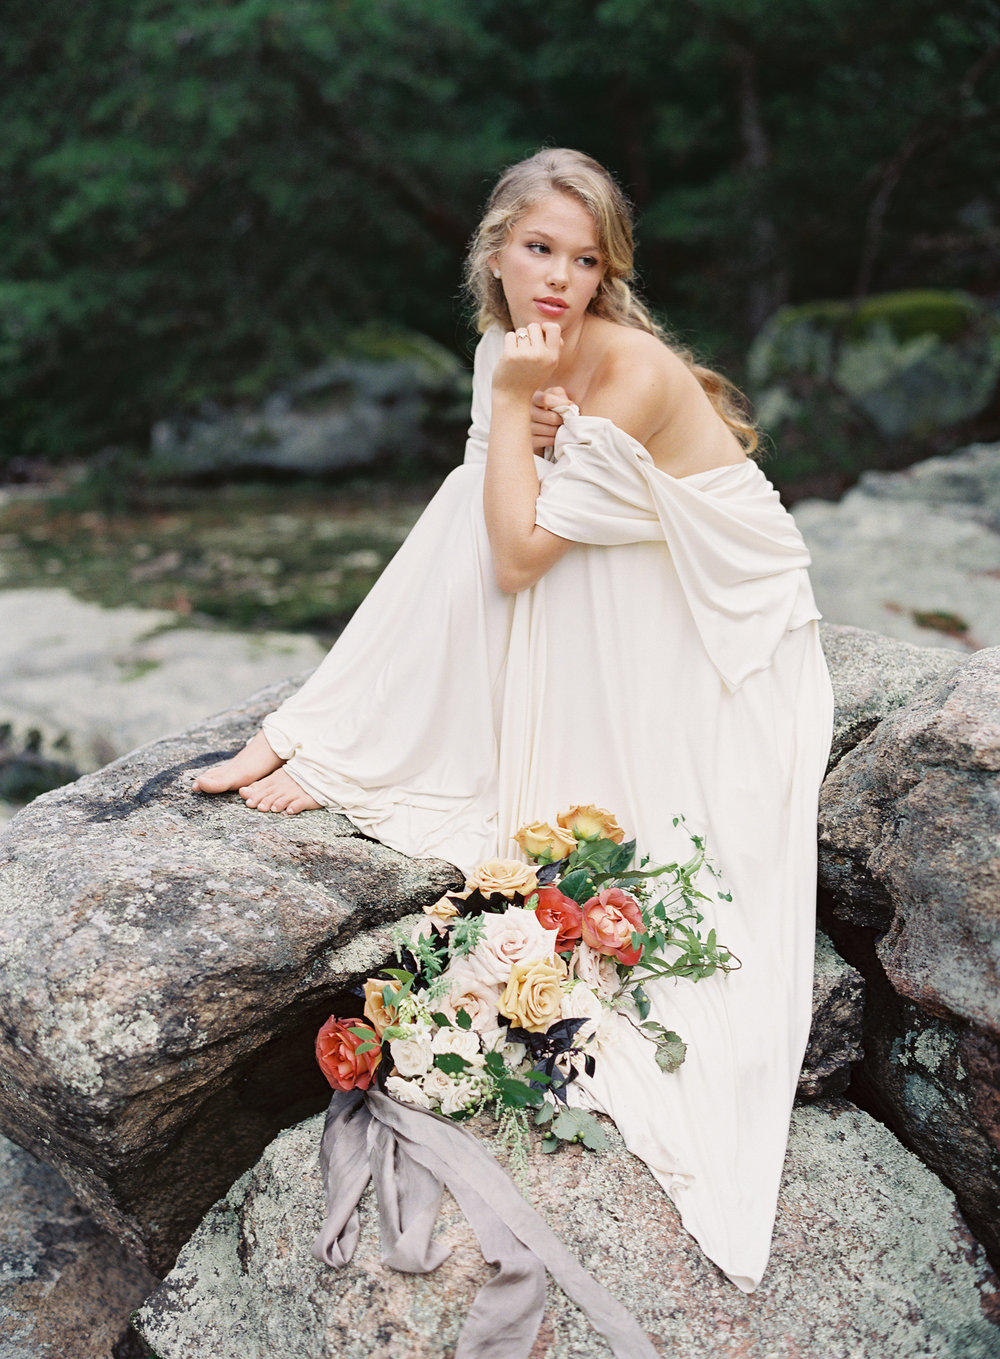 Autumn Wedding Inspiration at the Mill at Fine Creek by Richmond Virginia Wedding Planner East Made Event Company and Michael and Carina Photography81.jpg